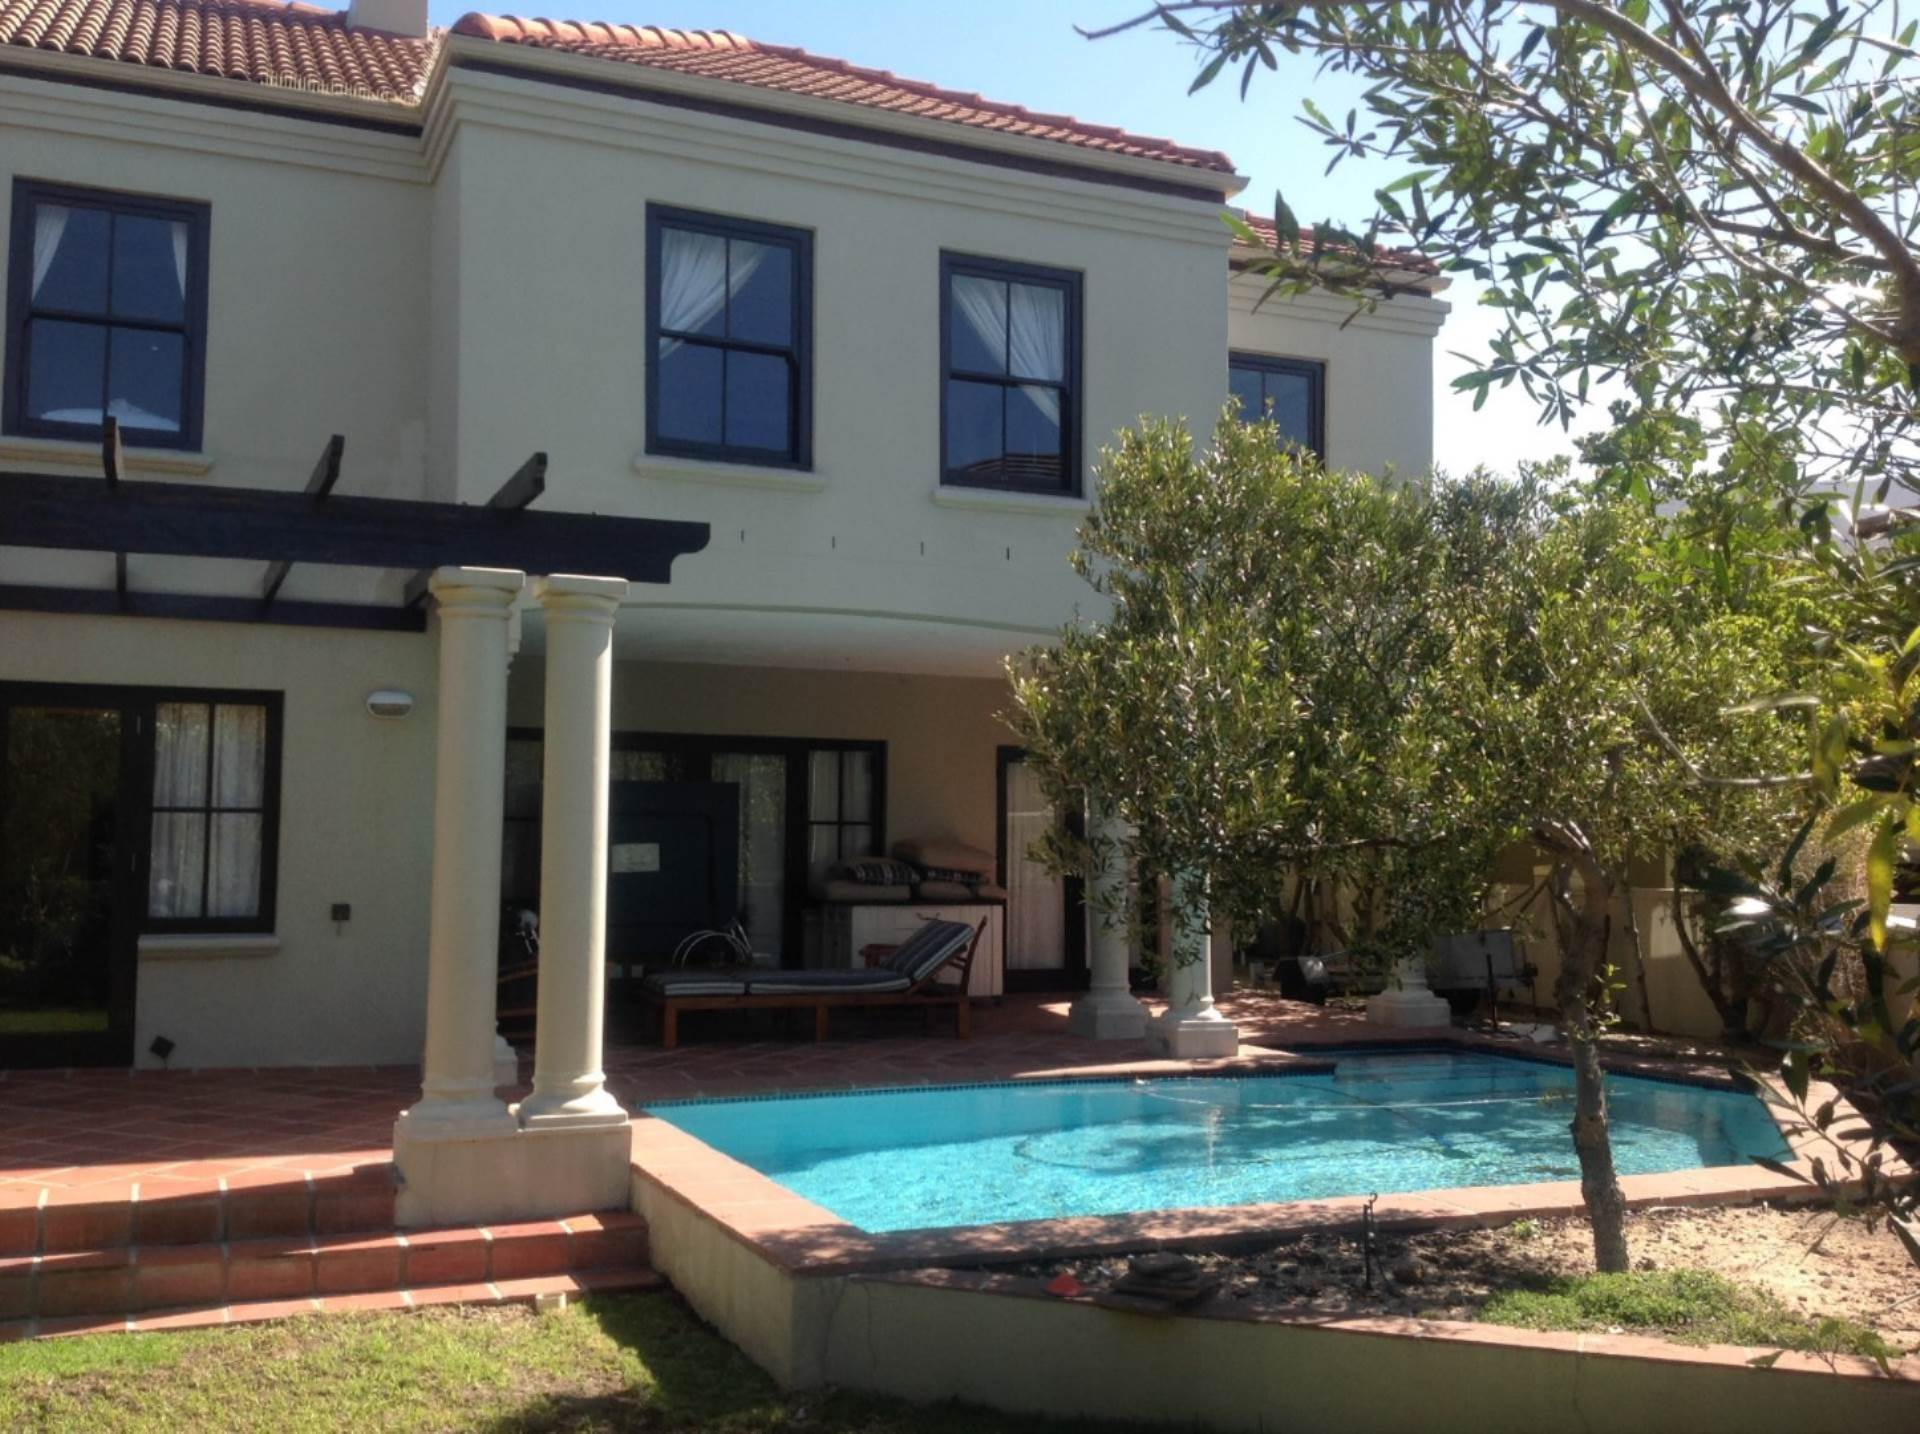 5 BedroomCluster To Rent In Tokai